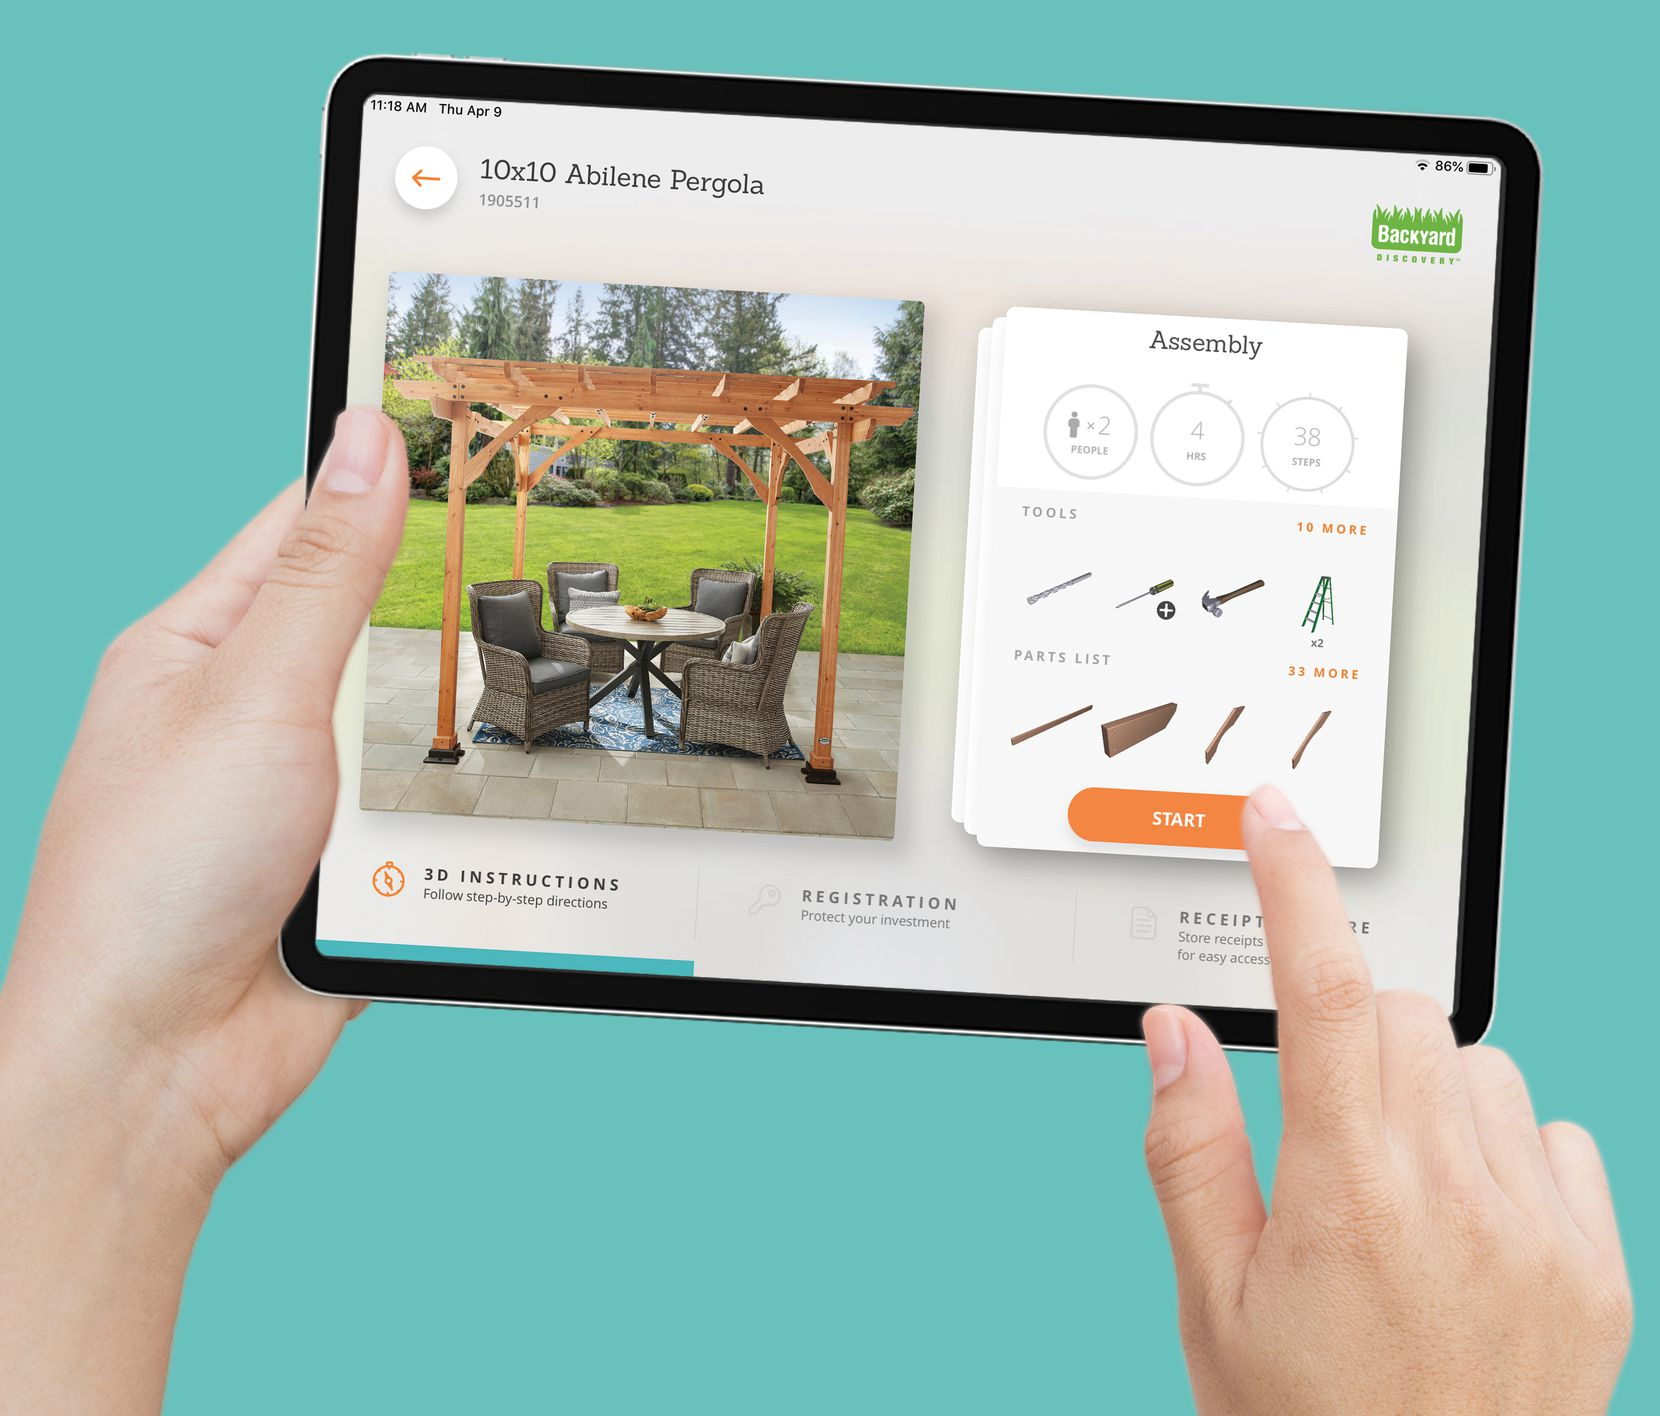 Grapevine-based Bilt Inc.'s app provides official instructions for major brands including Weber Grills, Samsung, Kidkraft, Coleman Powersports and private label brands from Home Depot, Walmart and Costco.